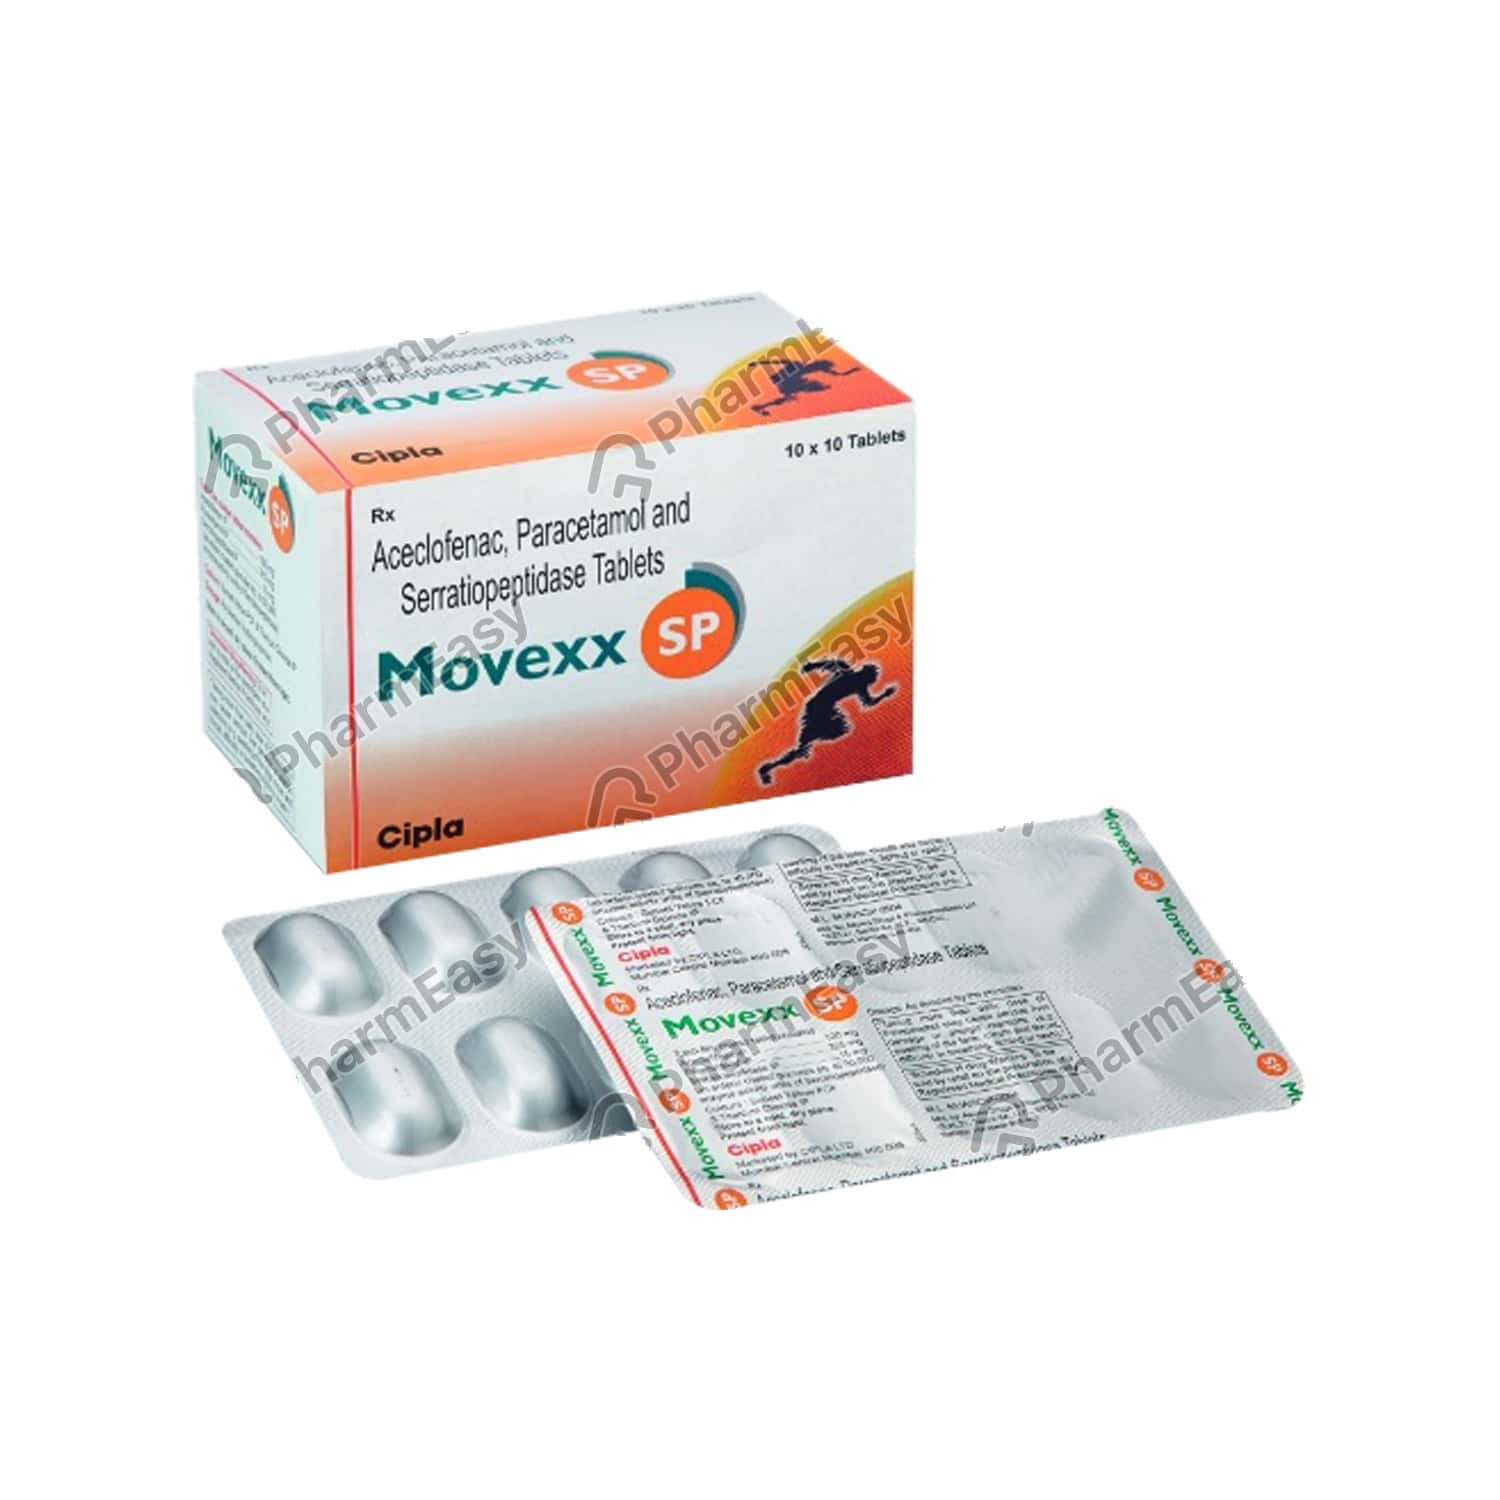 Movexx Sp Tablet